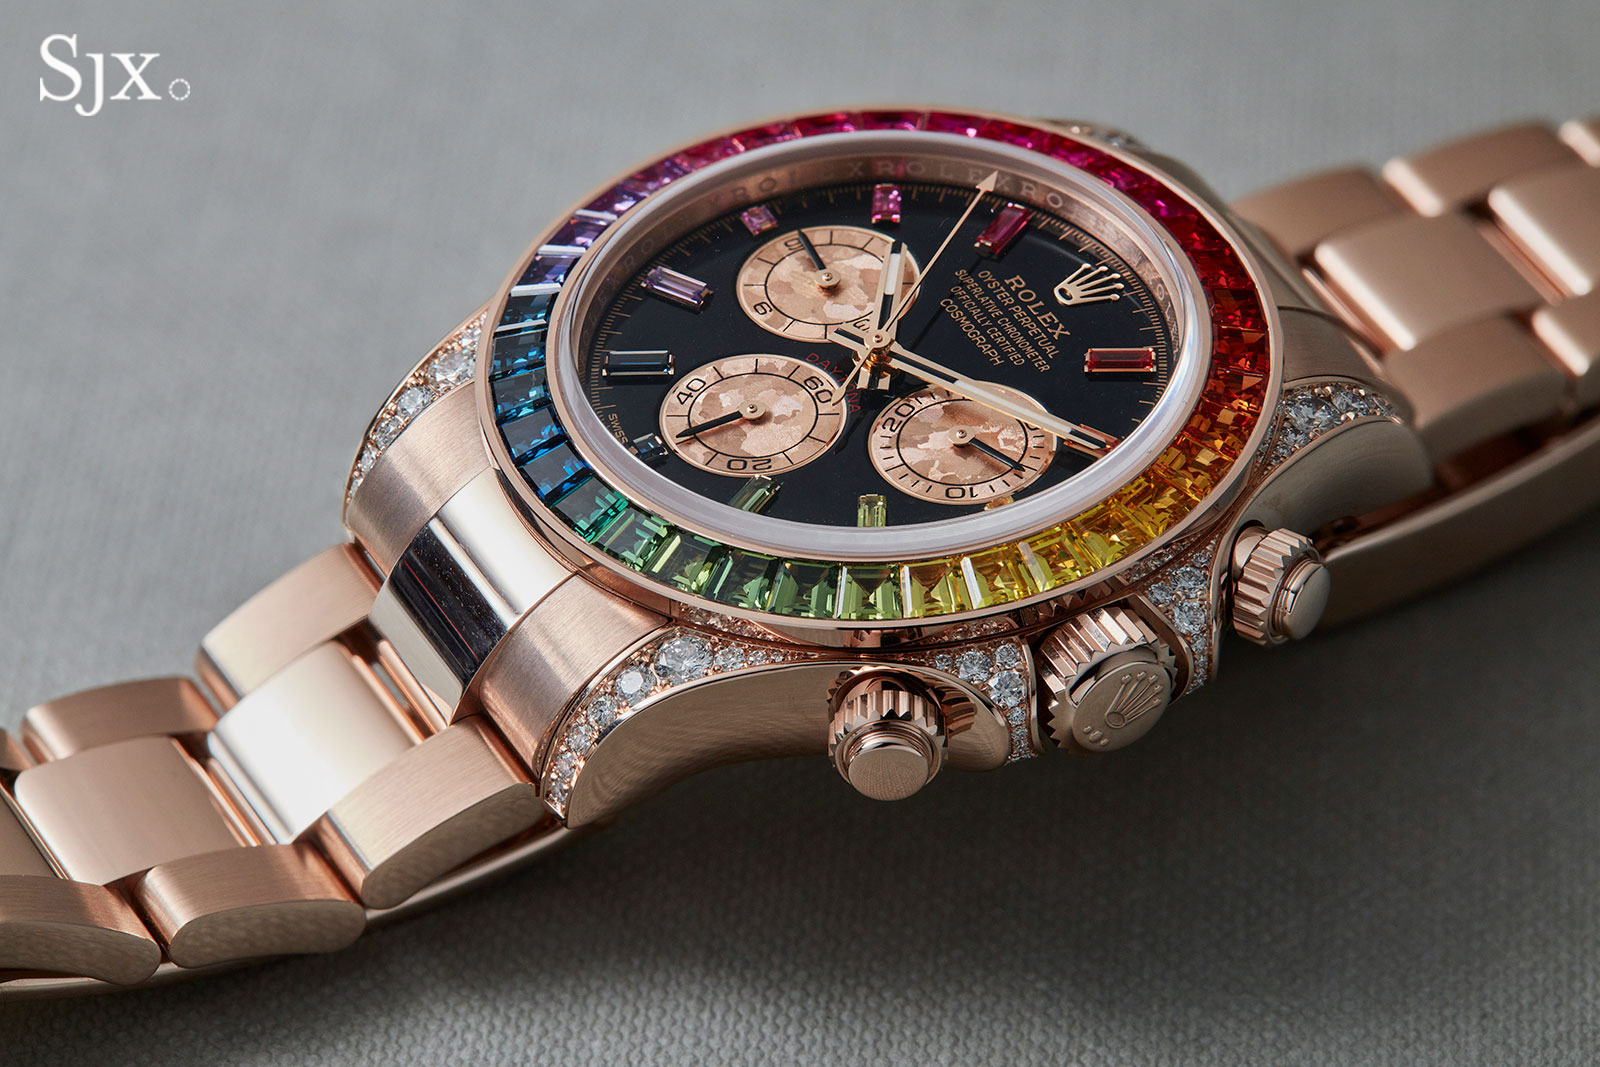 Up Close with the Rolex Daytona \u201cRainbow\u201d in Everose